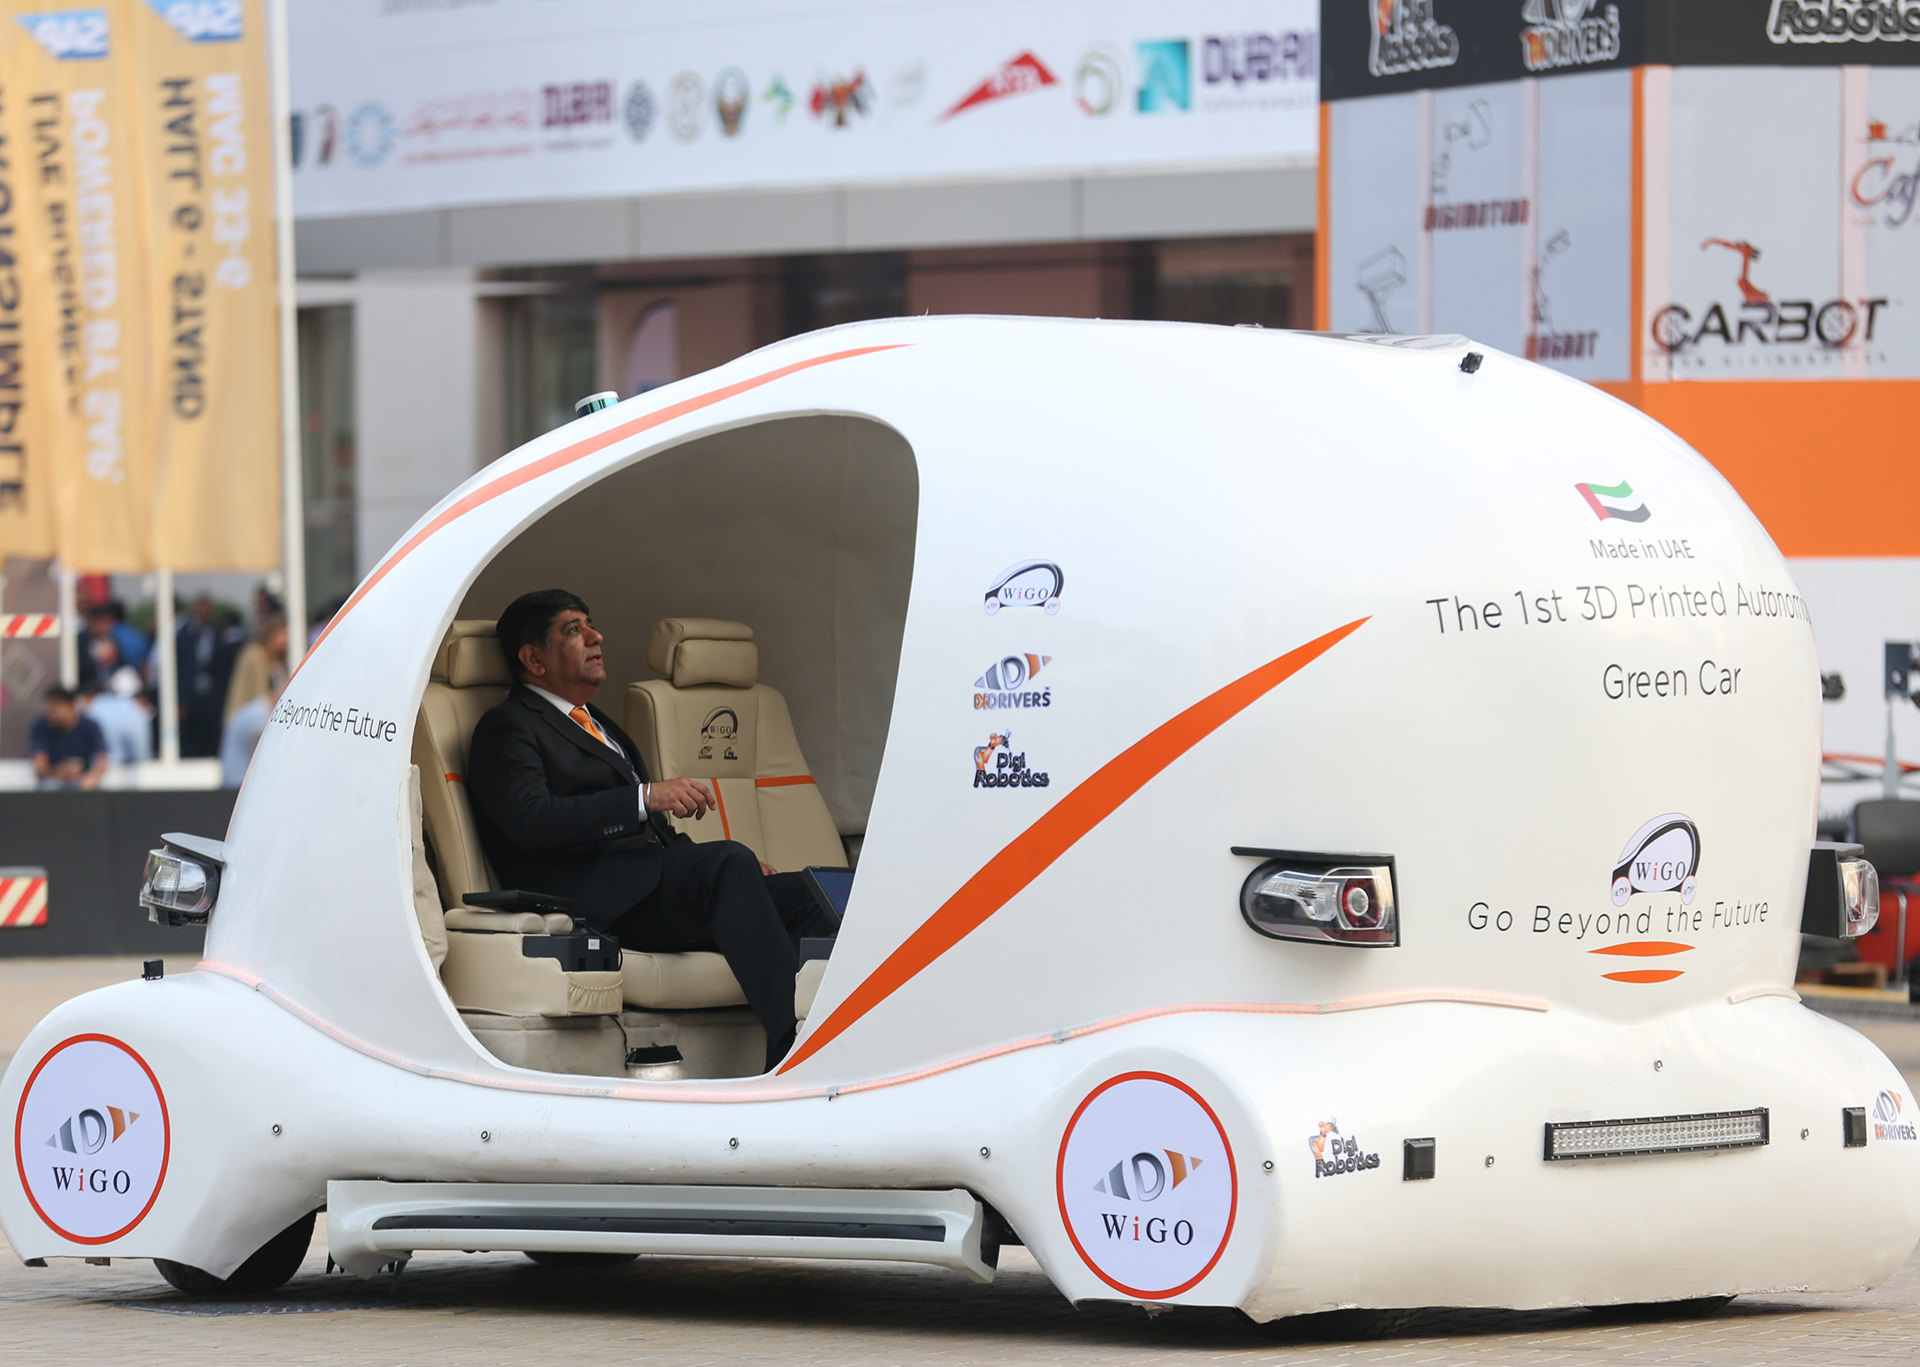 gitex-2016-3d-printed-car-wigo-1